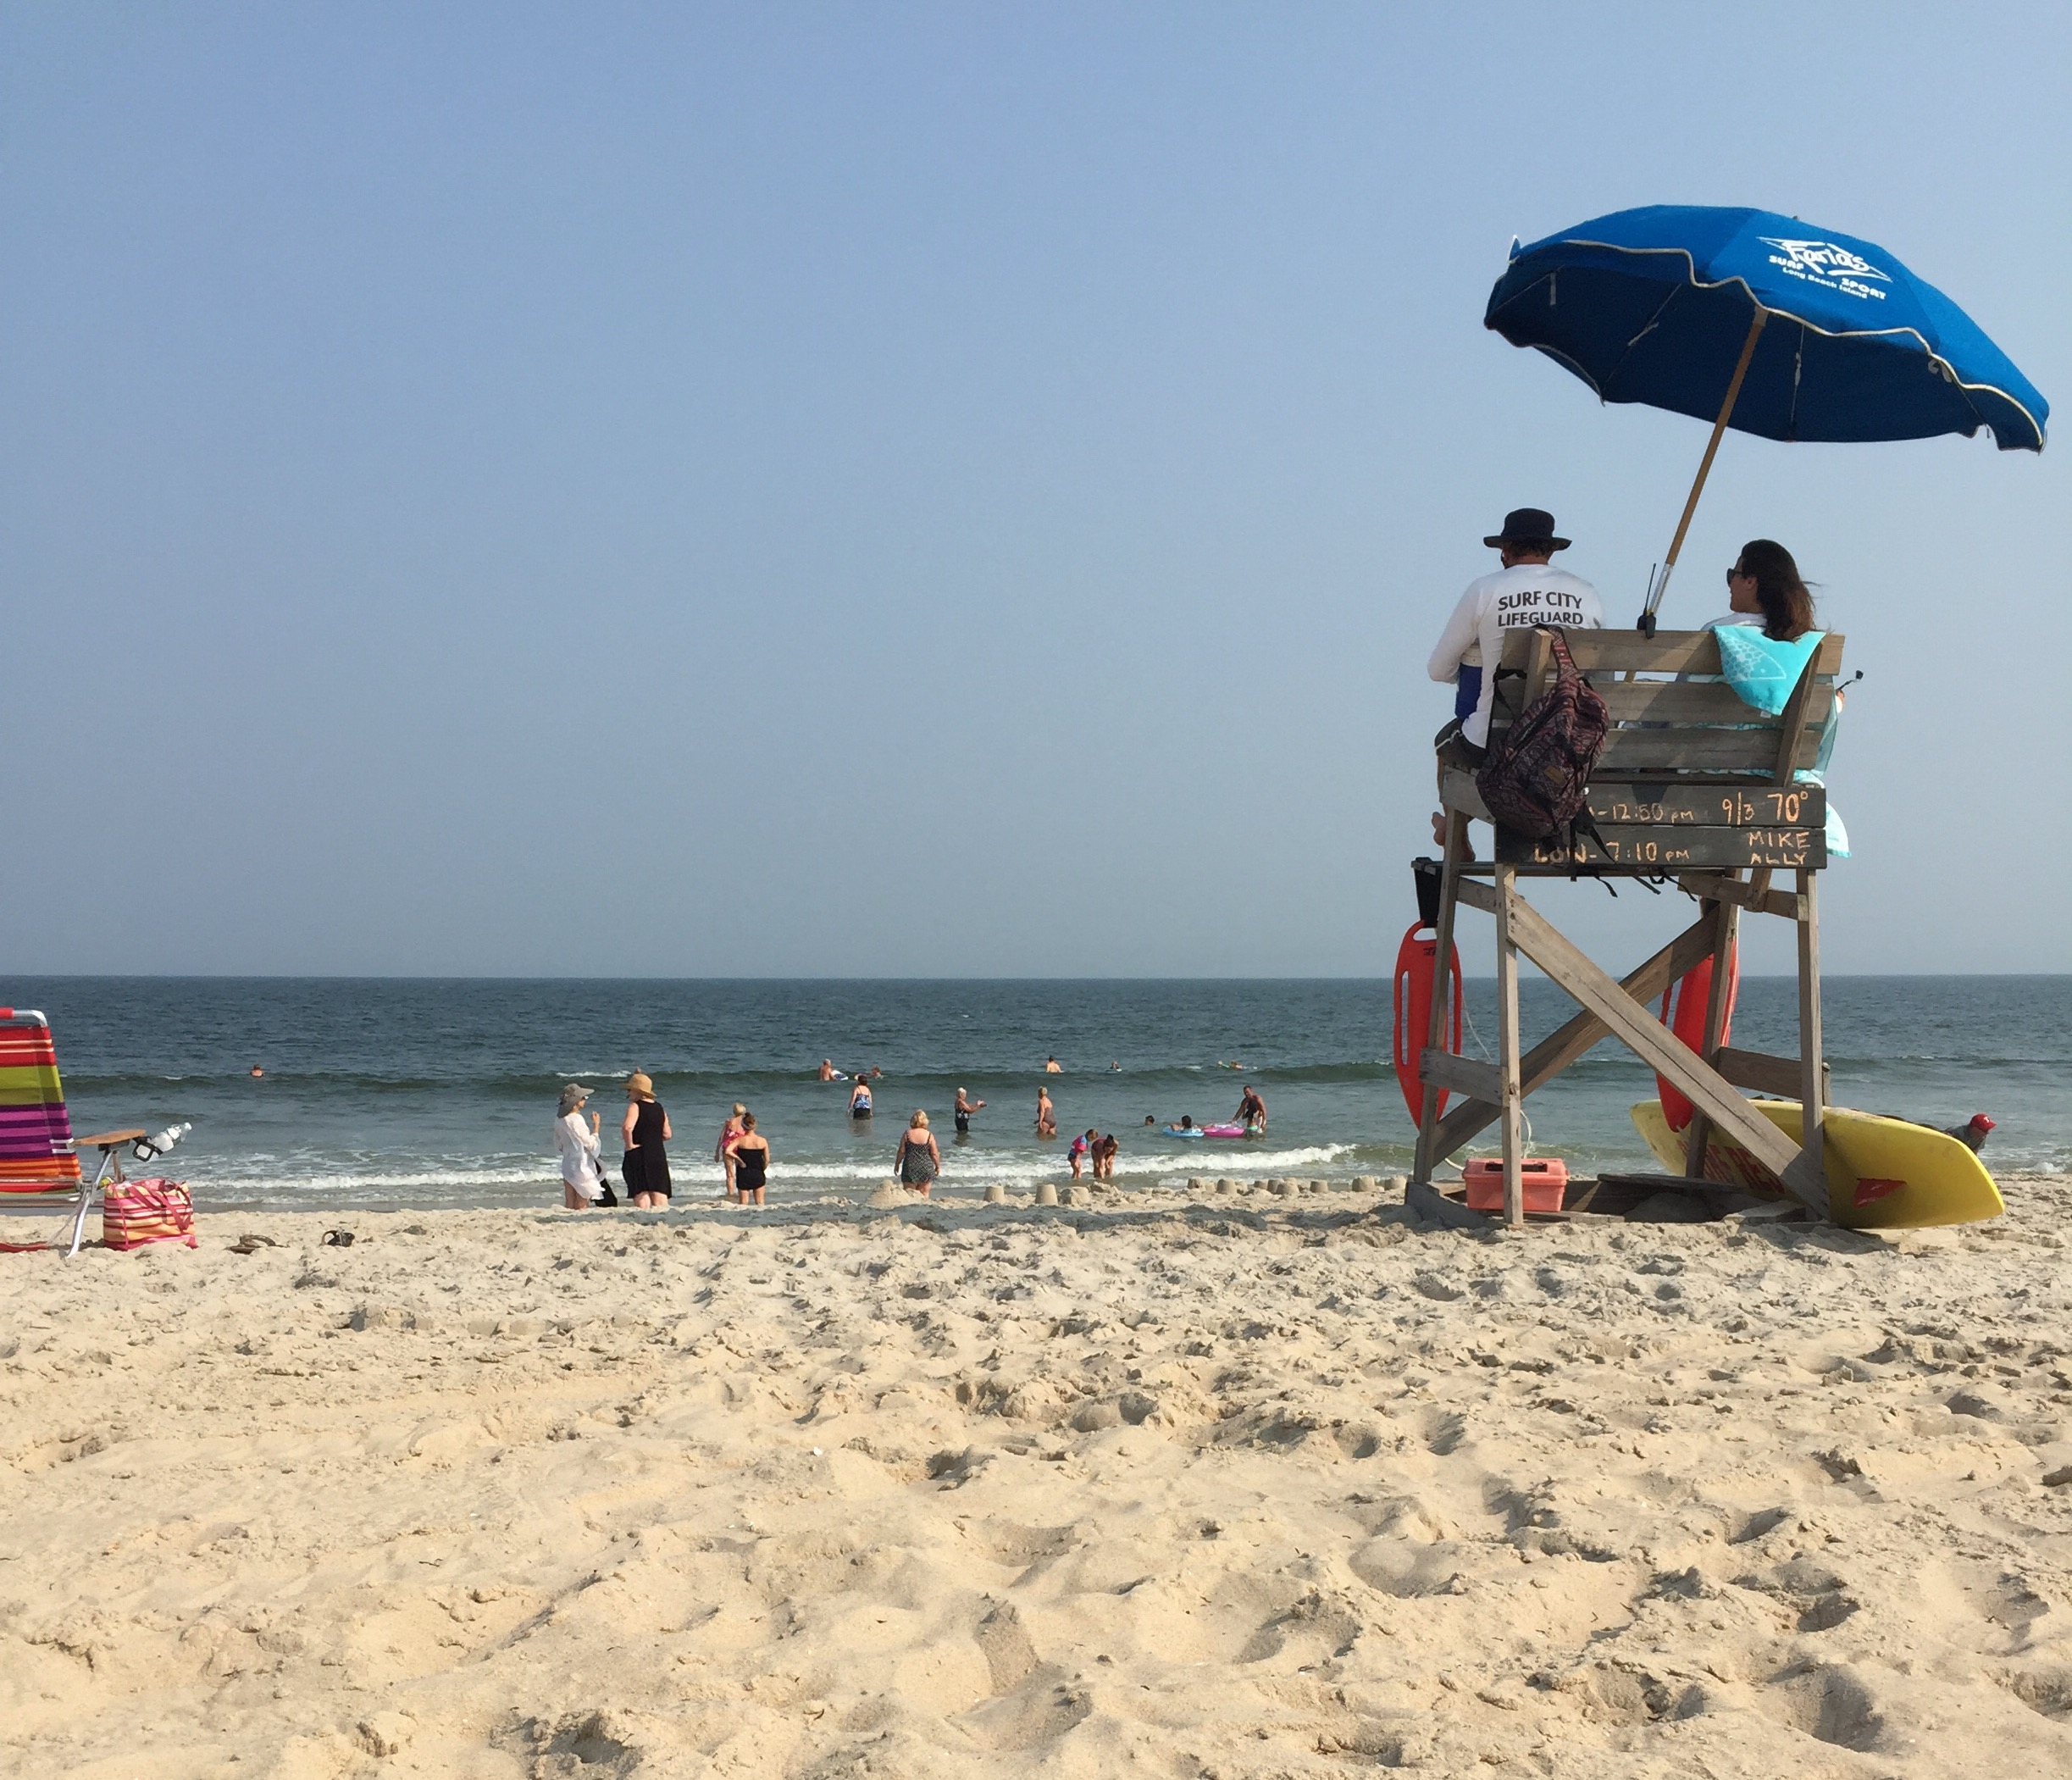 Lifeguards keep watch over an Ocean County beach, Sept. 3, 2015. (Photo: Daniel Nee)